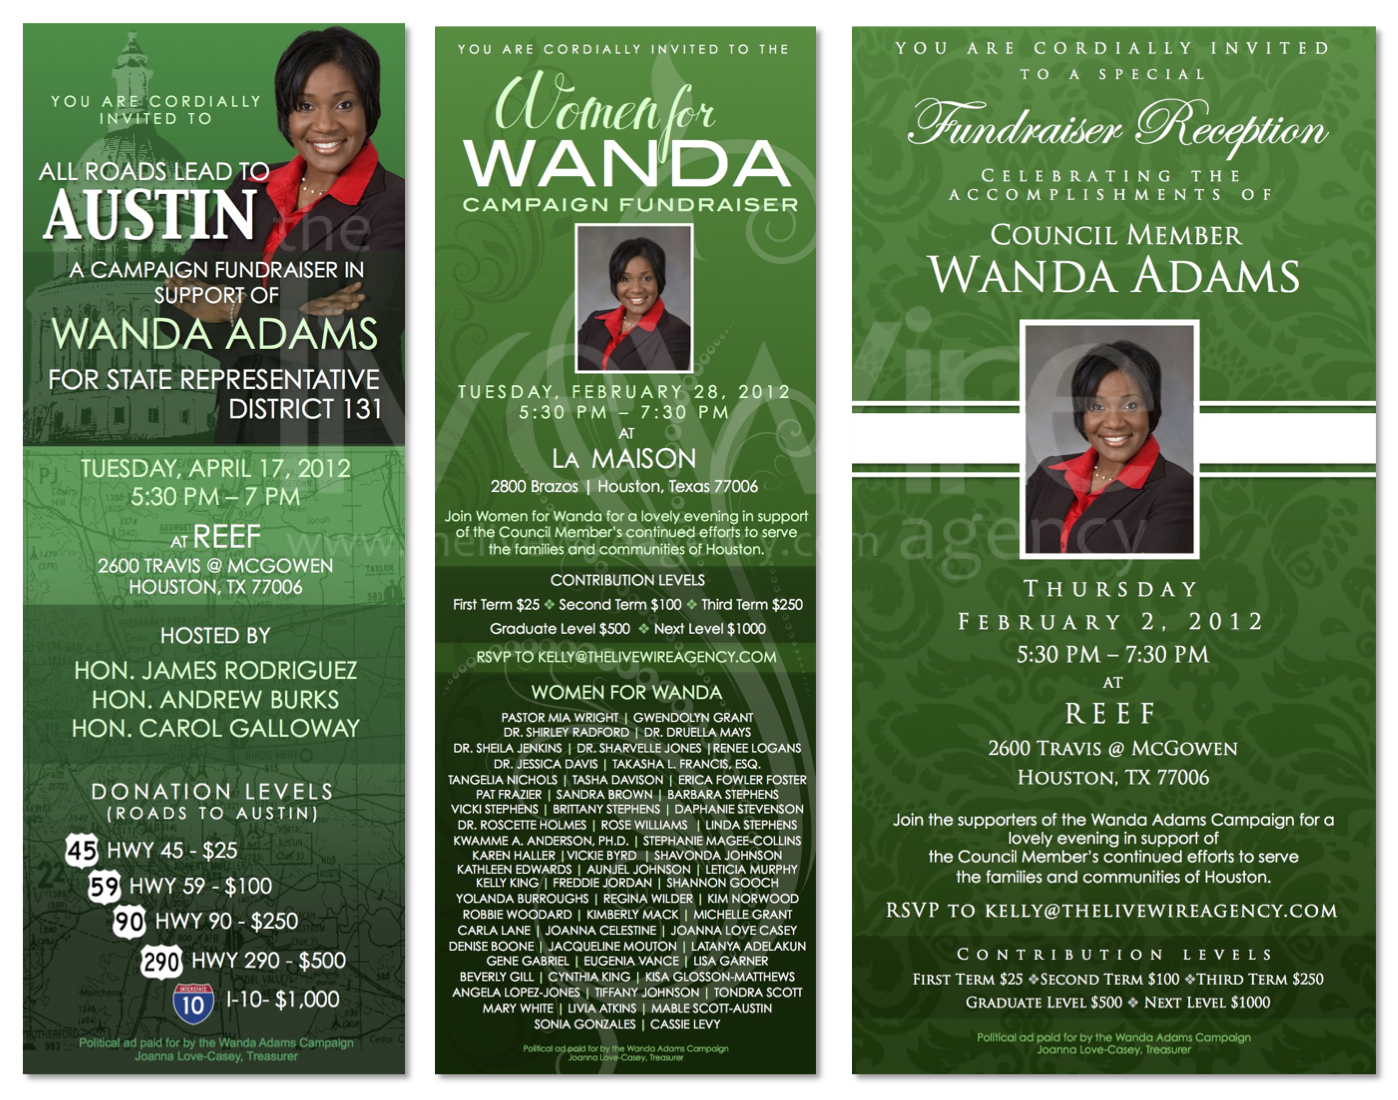 Campaign Fundraiser Invitations